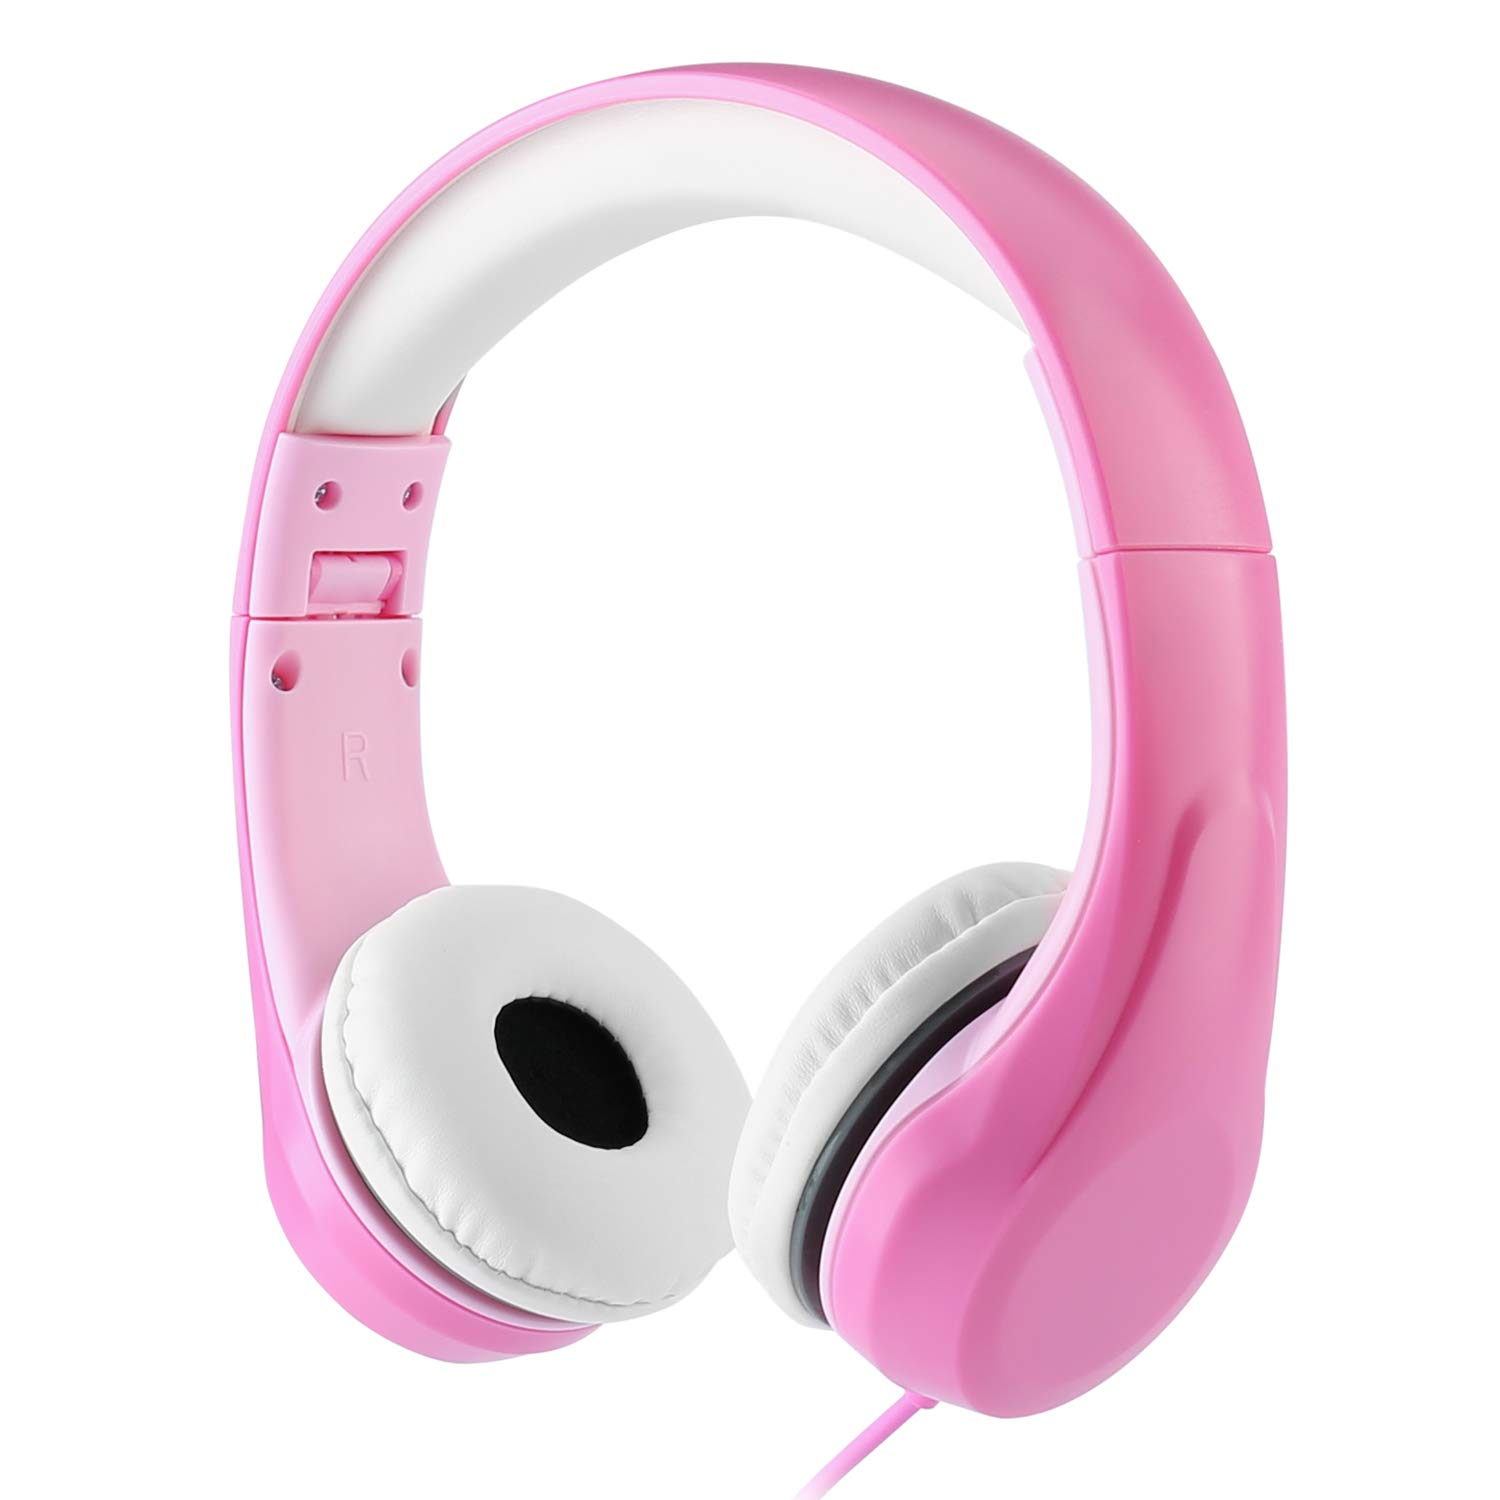 [Volume Limited] LINKWIN Kids Safety Foldable Stereo Headphones,3.5mm Jack Wired Cord Earbuds, Volume Controlled at 85dB On/Over Ear Children Toddler Headset, for iPad Kindle Airplane School, Pink